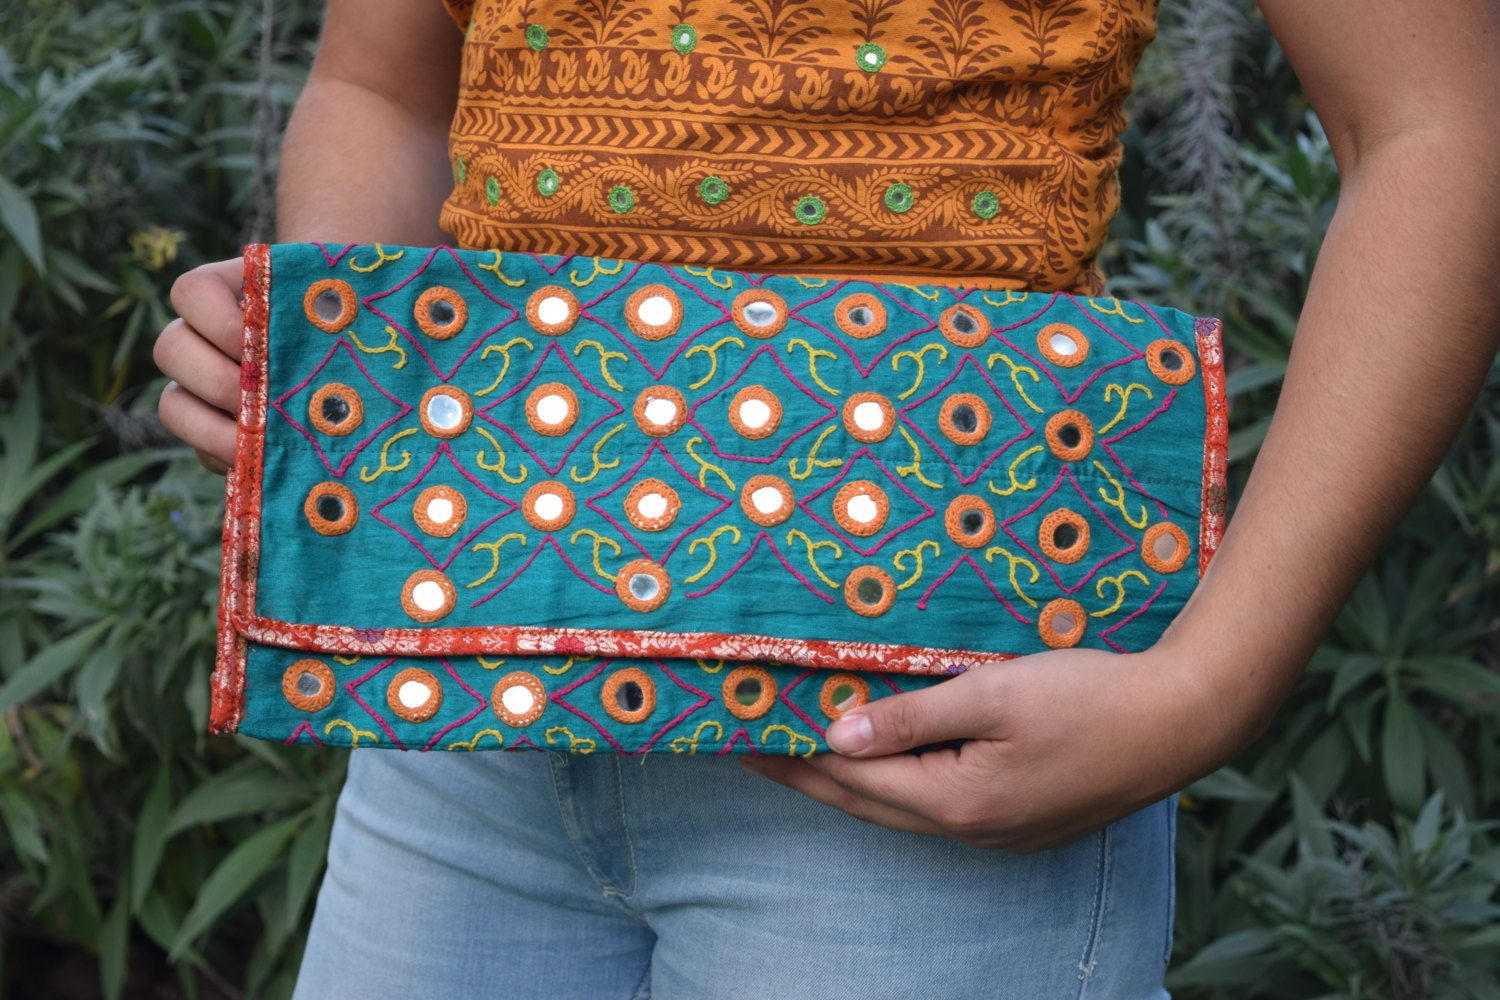 Handmade teal mirrored clutch bag by SaheliDesigns on Etsy https://www.etsy.com/au/listing/289758339/handmade-teal-mirrored-clutch-bag